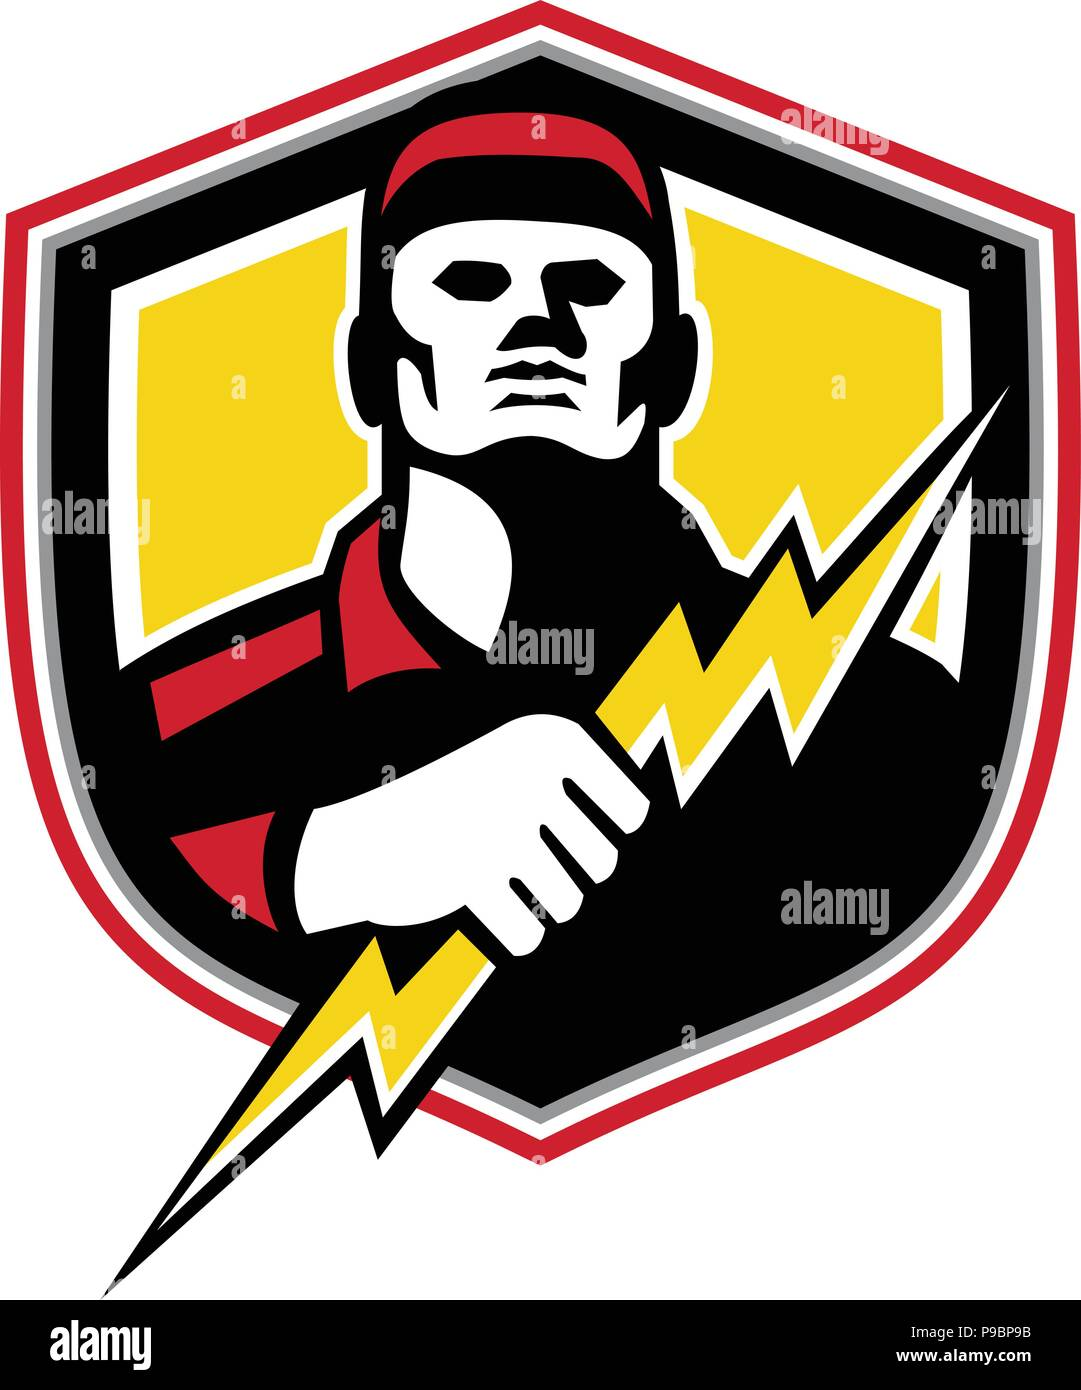 the latest f5651 c587b Mascot icon illustration of bust of a power lineman or electrician holding  a thunderbolt or lightning